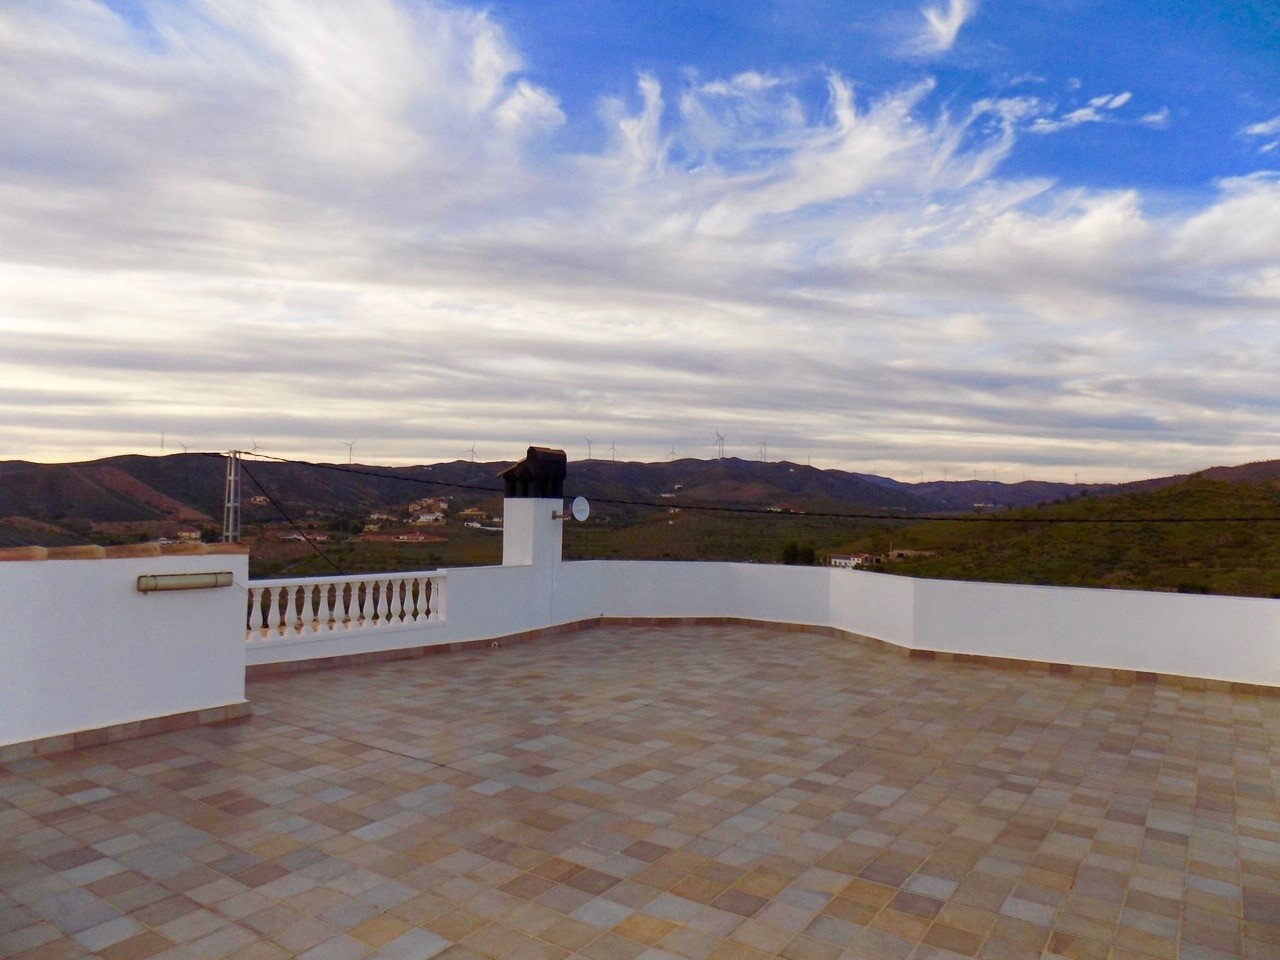 Propery For Sale in Huércal-Overa, Spain image 14